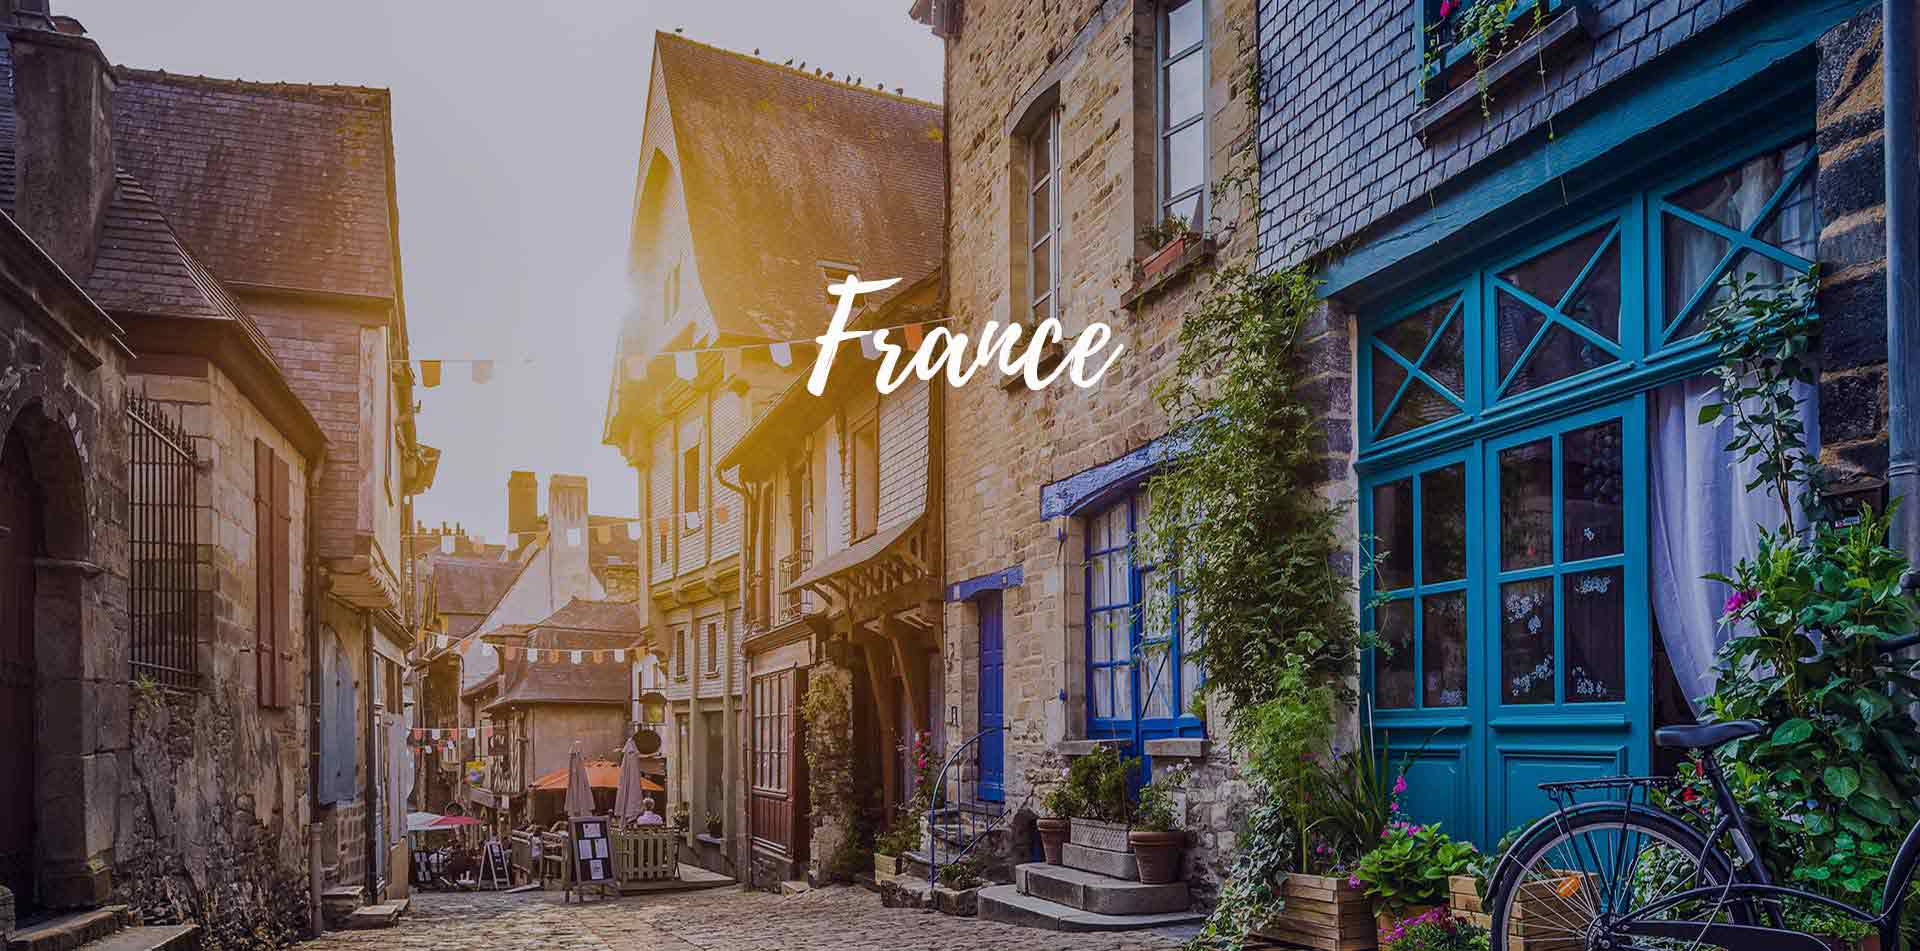 Europe France Brittany old historic town at sunset cobblestone streets bright colored doors - luxury vacation destinations